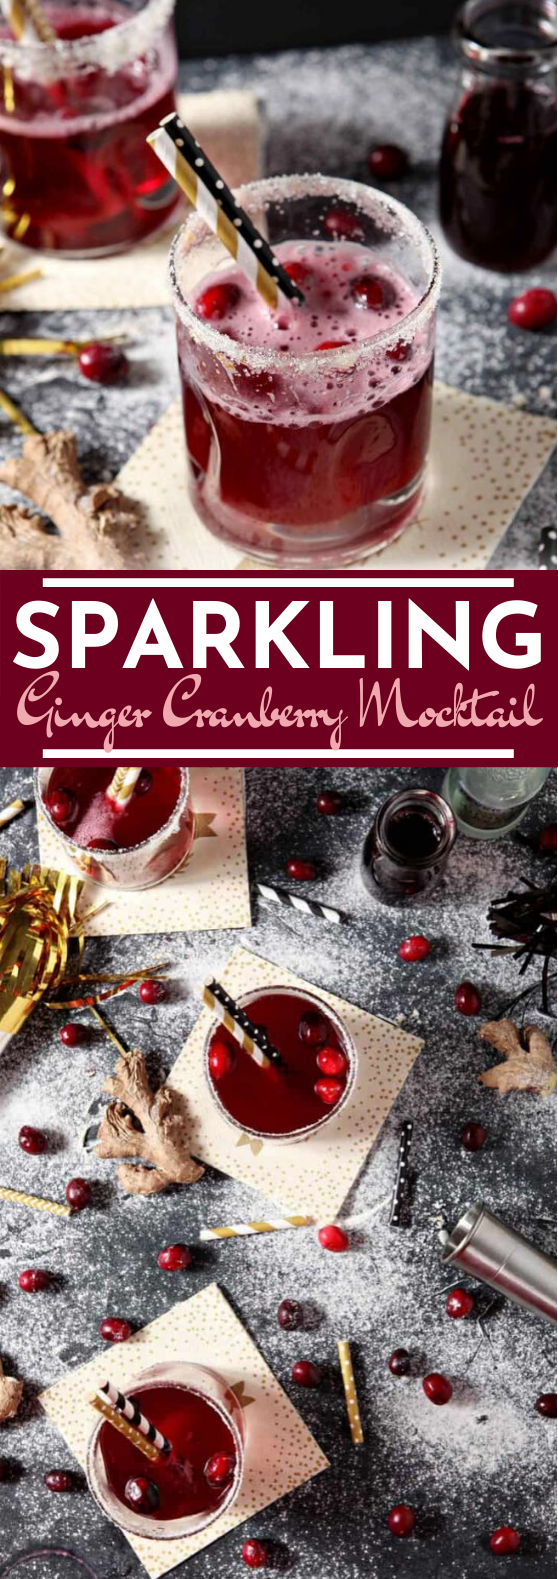 Sparkling Ginger Cranberry Mocktail #drinks #nonalcohol #kidfriendly #christmas #punch